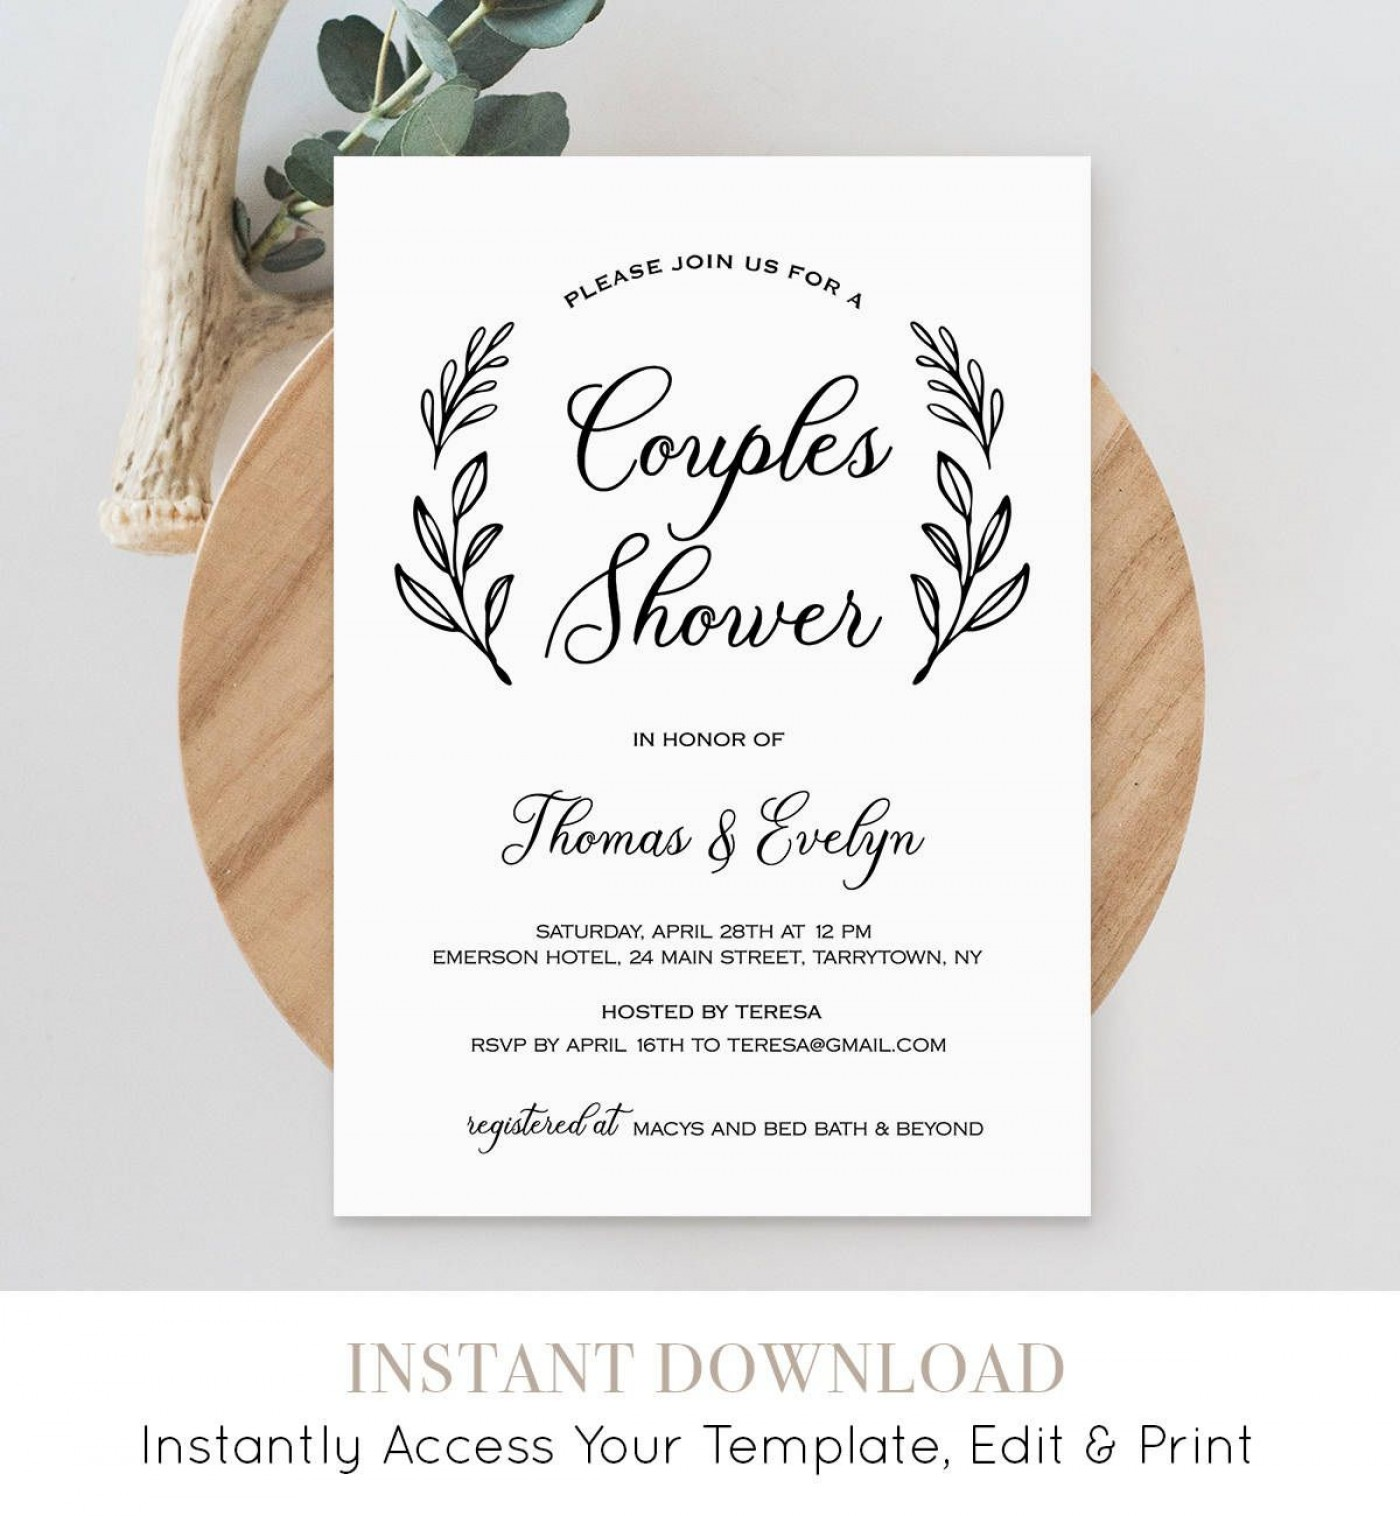 005 Amazing Free Couple Shower Invitation Template Download Picture 1400